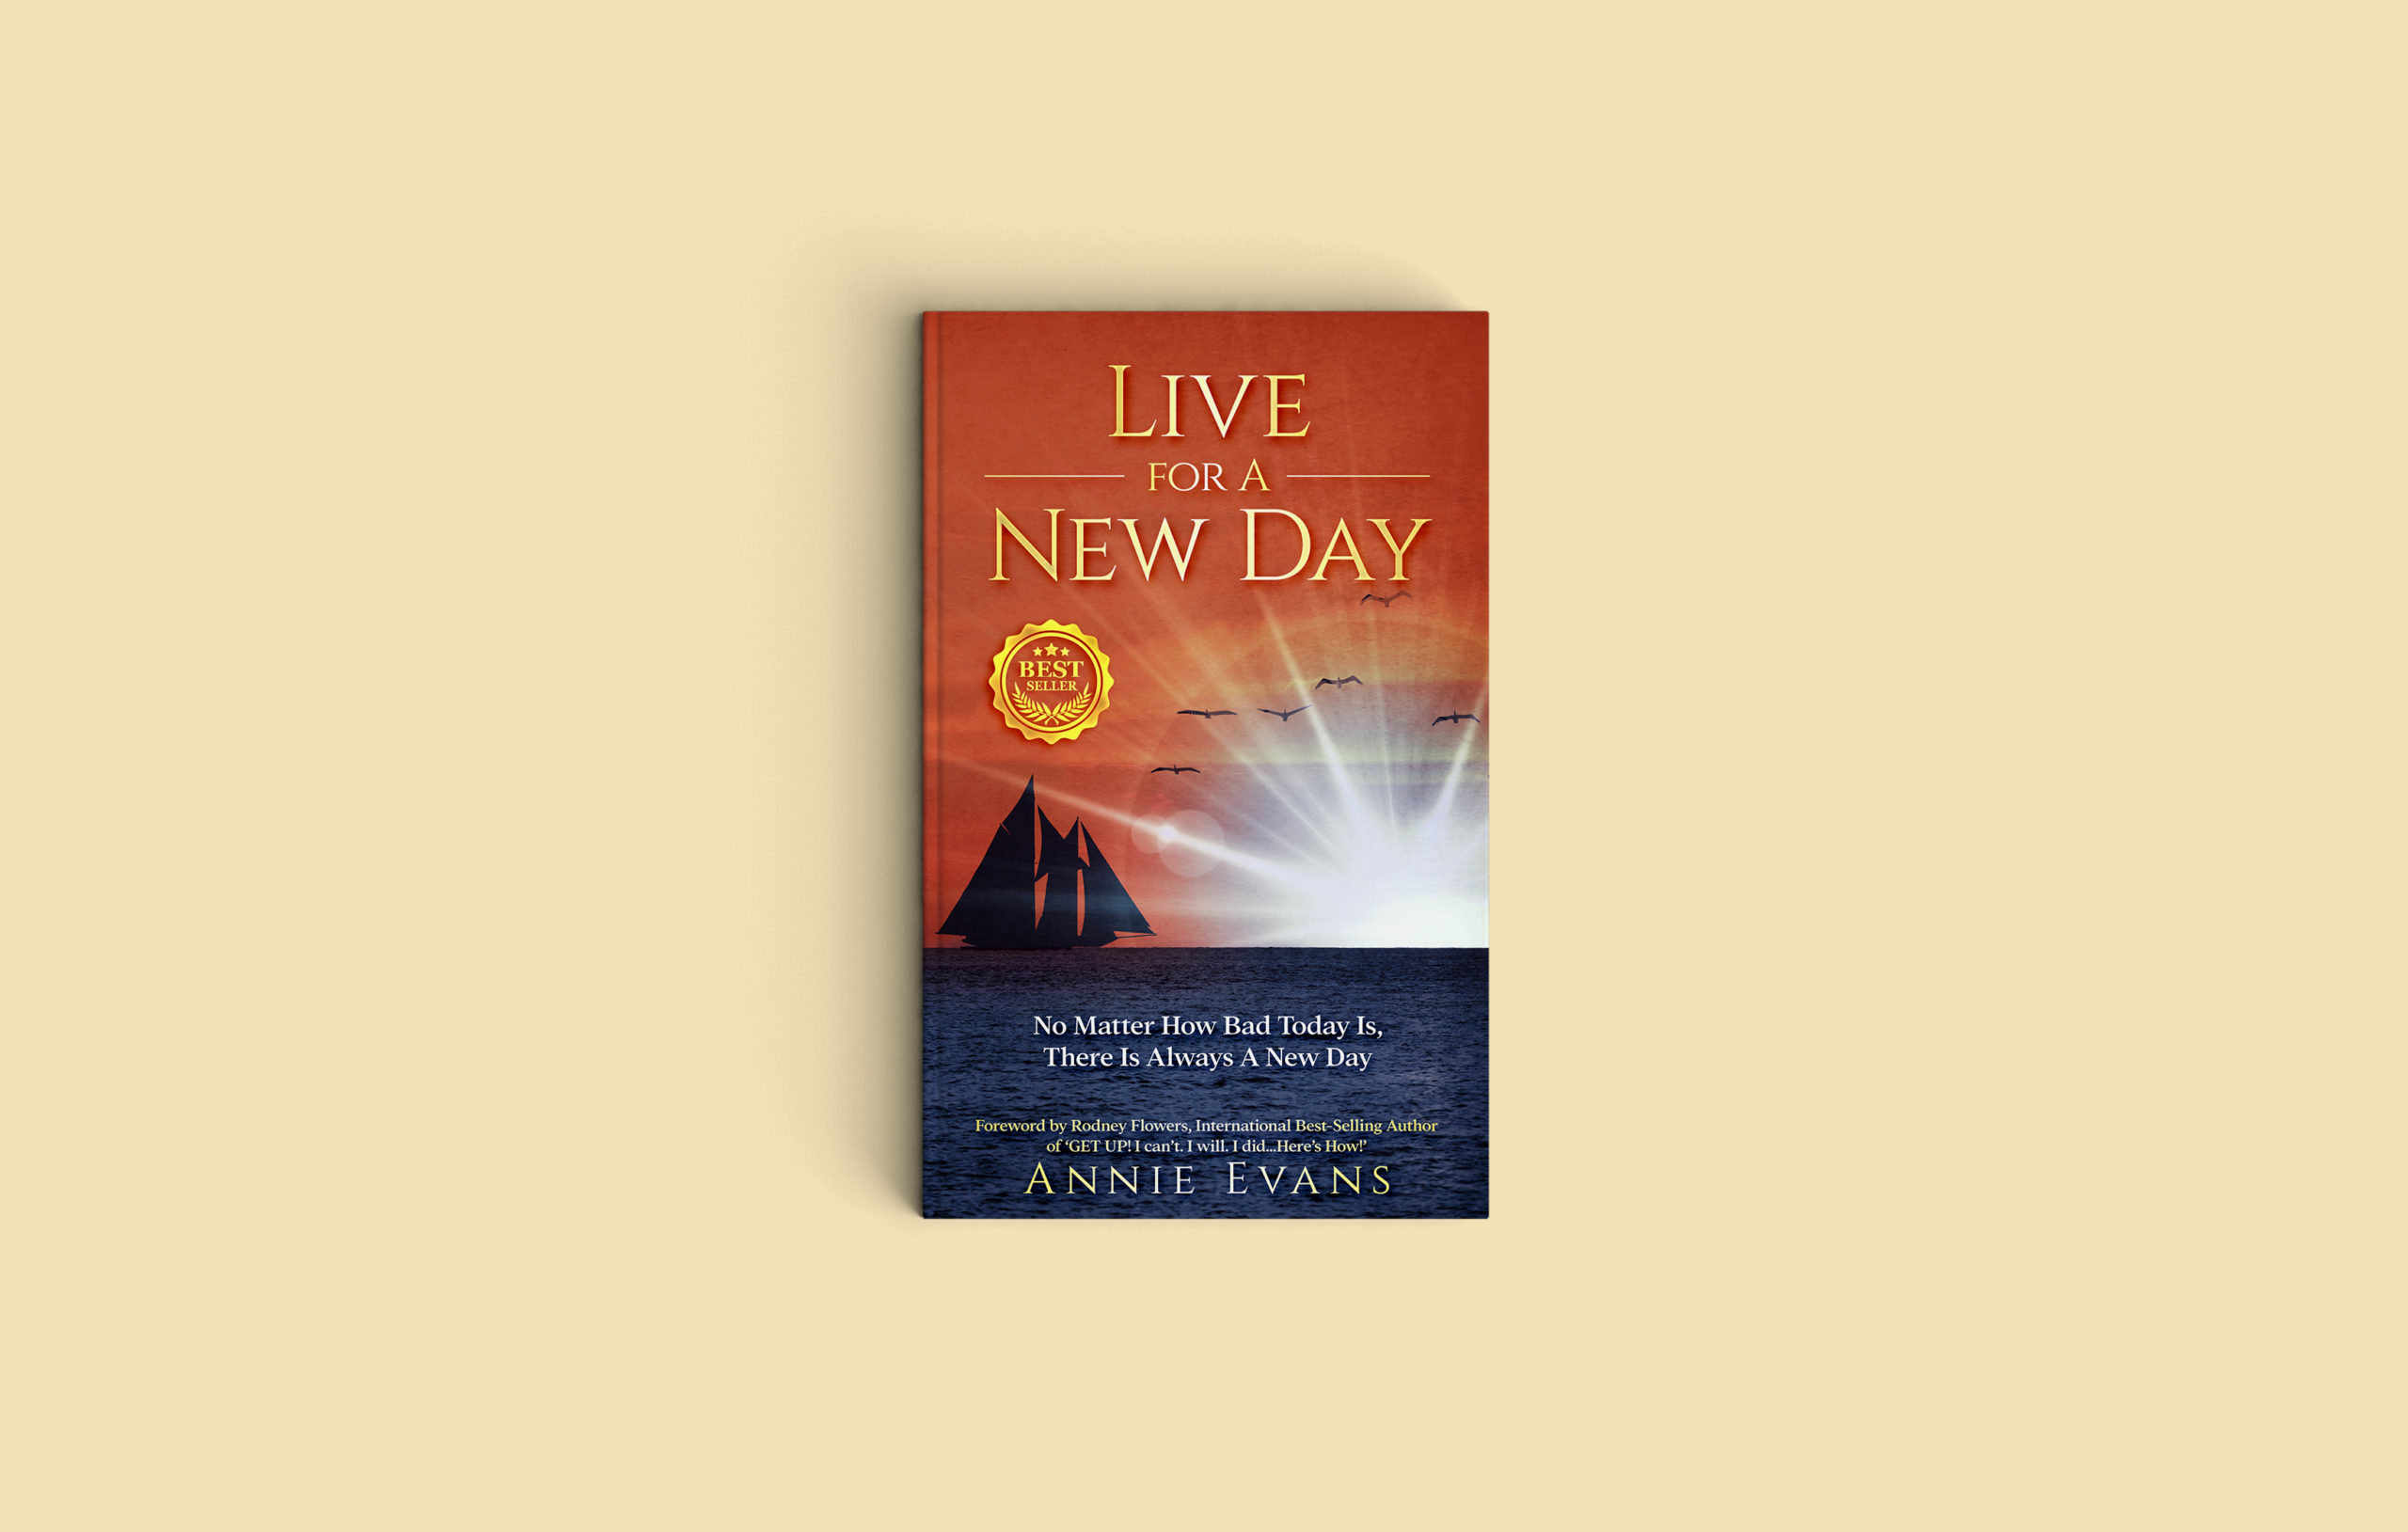 live for a new day by annie evans featured image